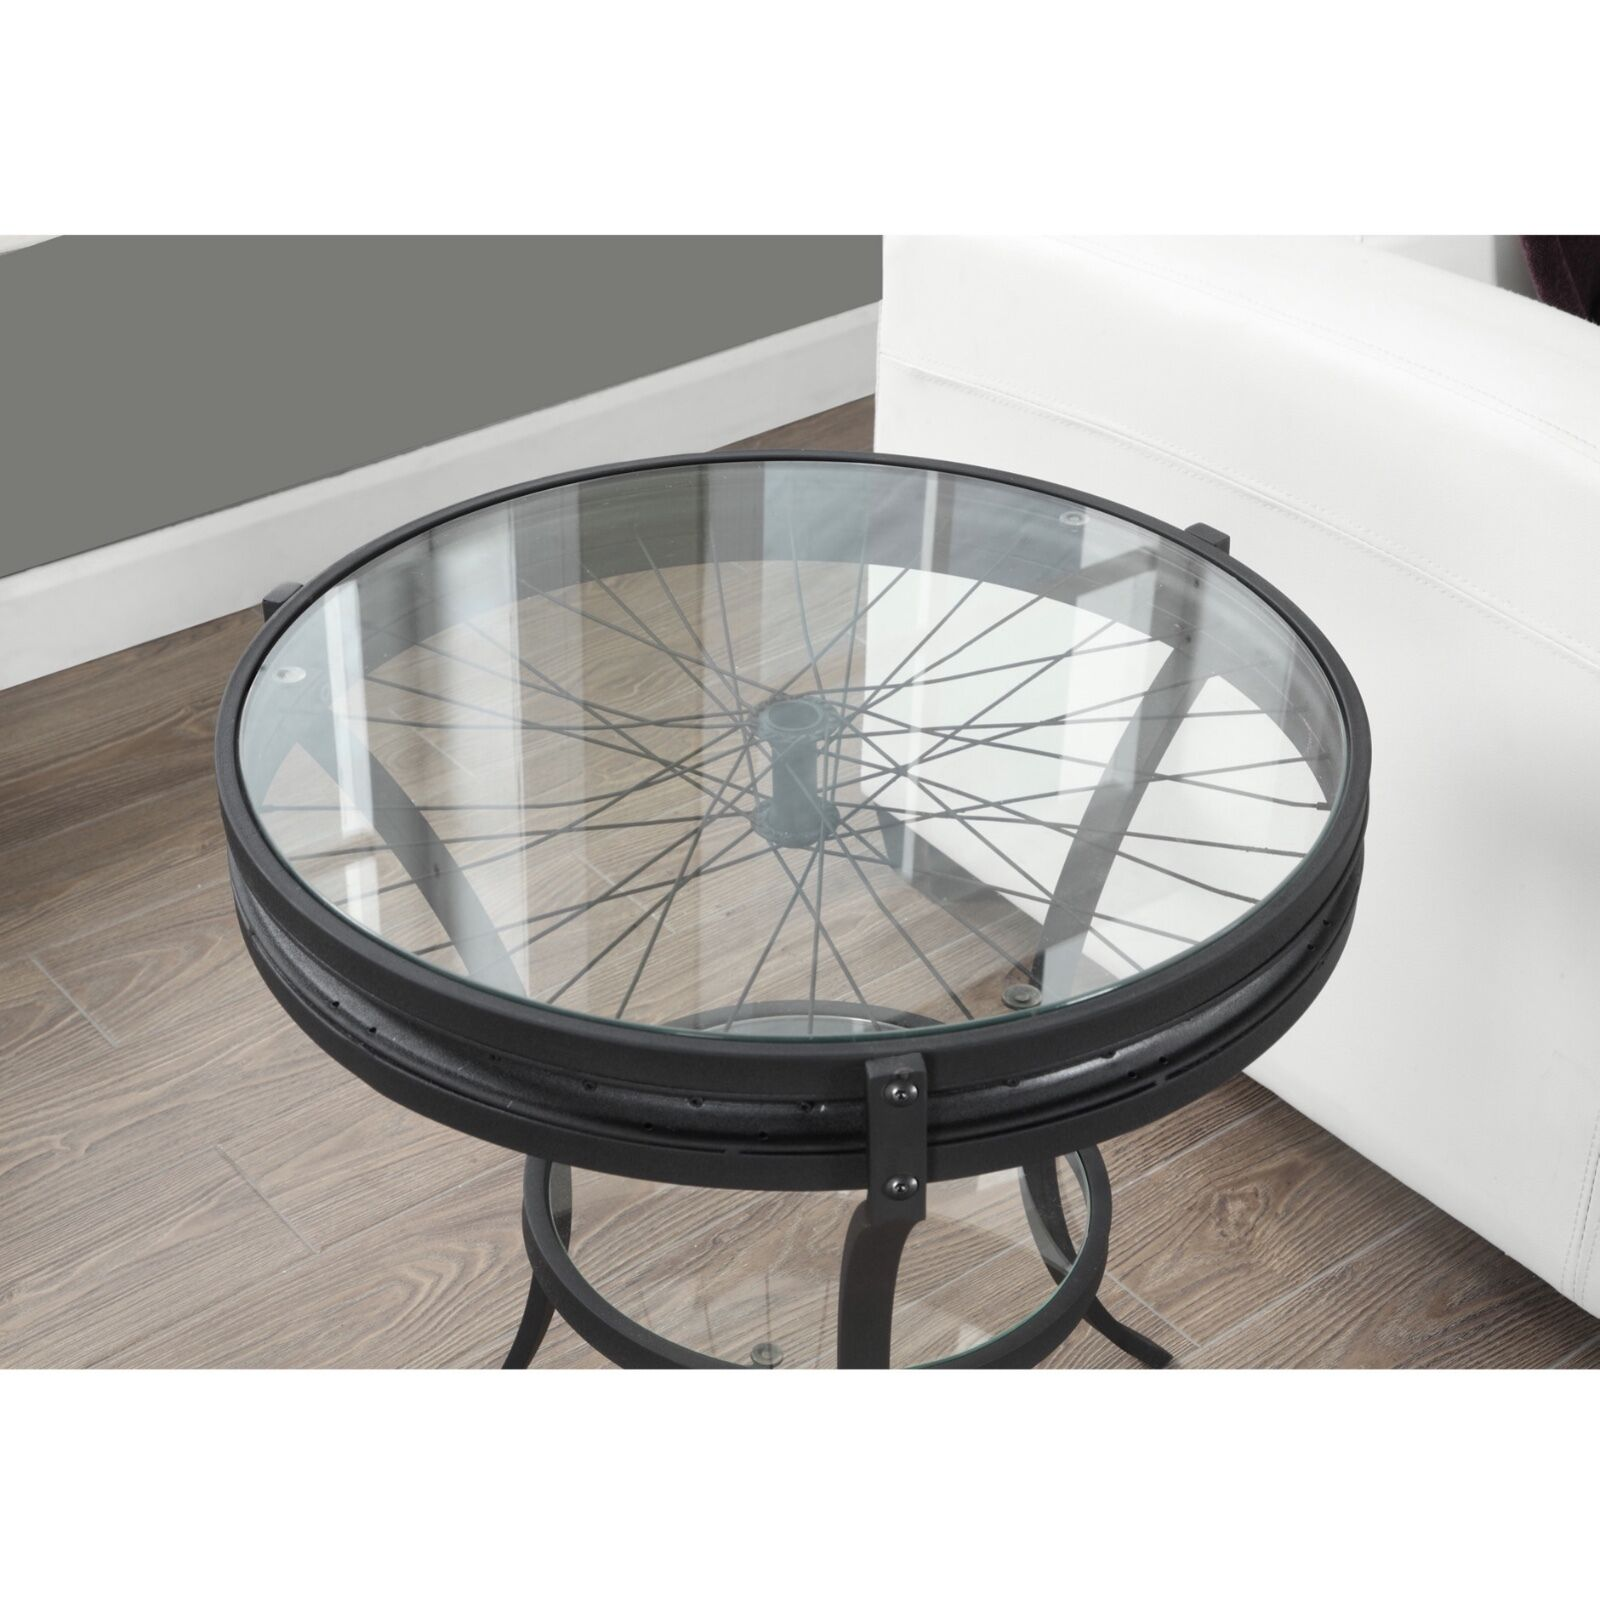 Vintage Country Styled Accent End Table Industrial Round Glass Top